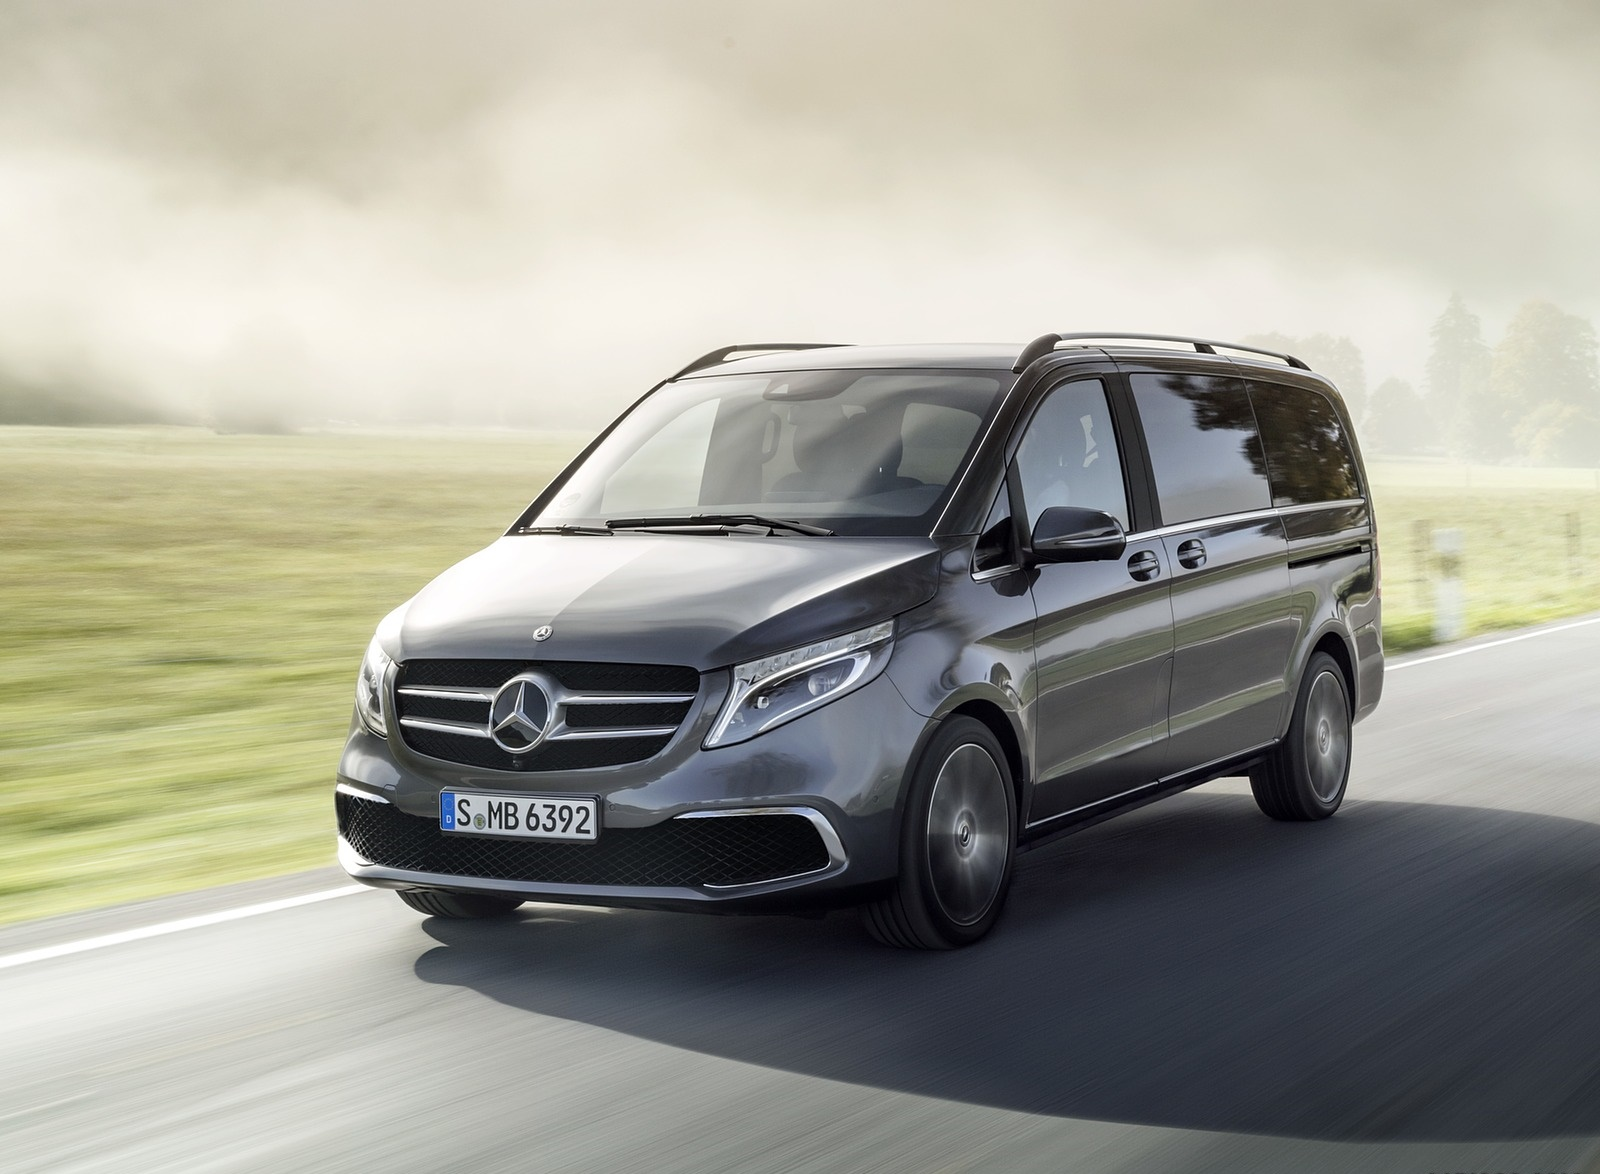 2019 Mercedes-Benz V-Class EXCLUSIVE Line (Color: Selenit Grey Metallic) Front Three-Quarter Wallpaper (1)